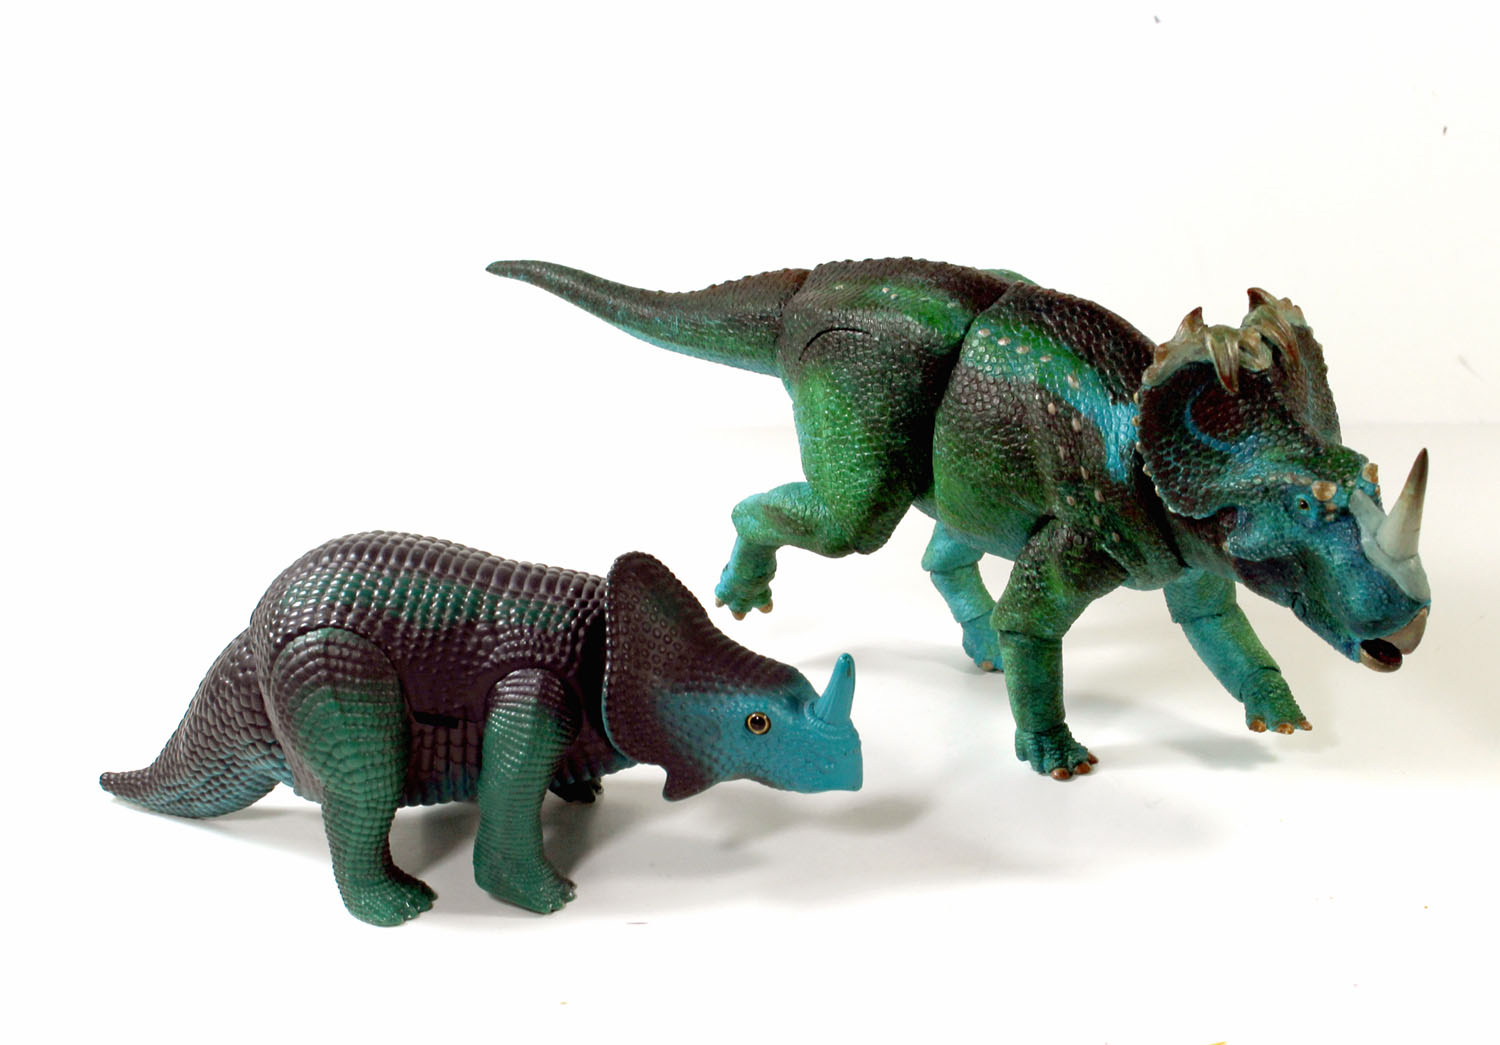 Monoclonius with Dino Riders